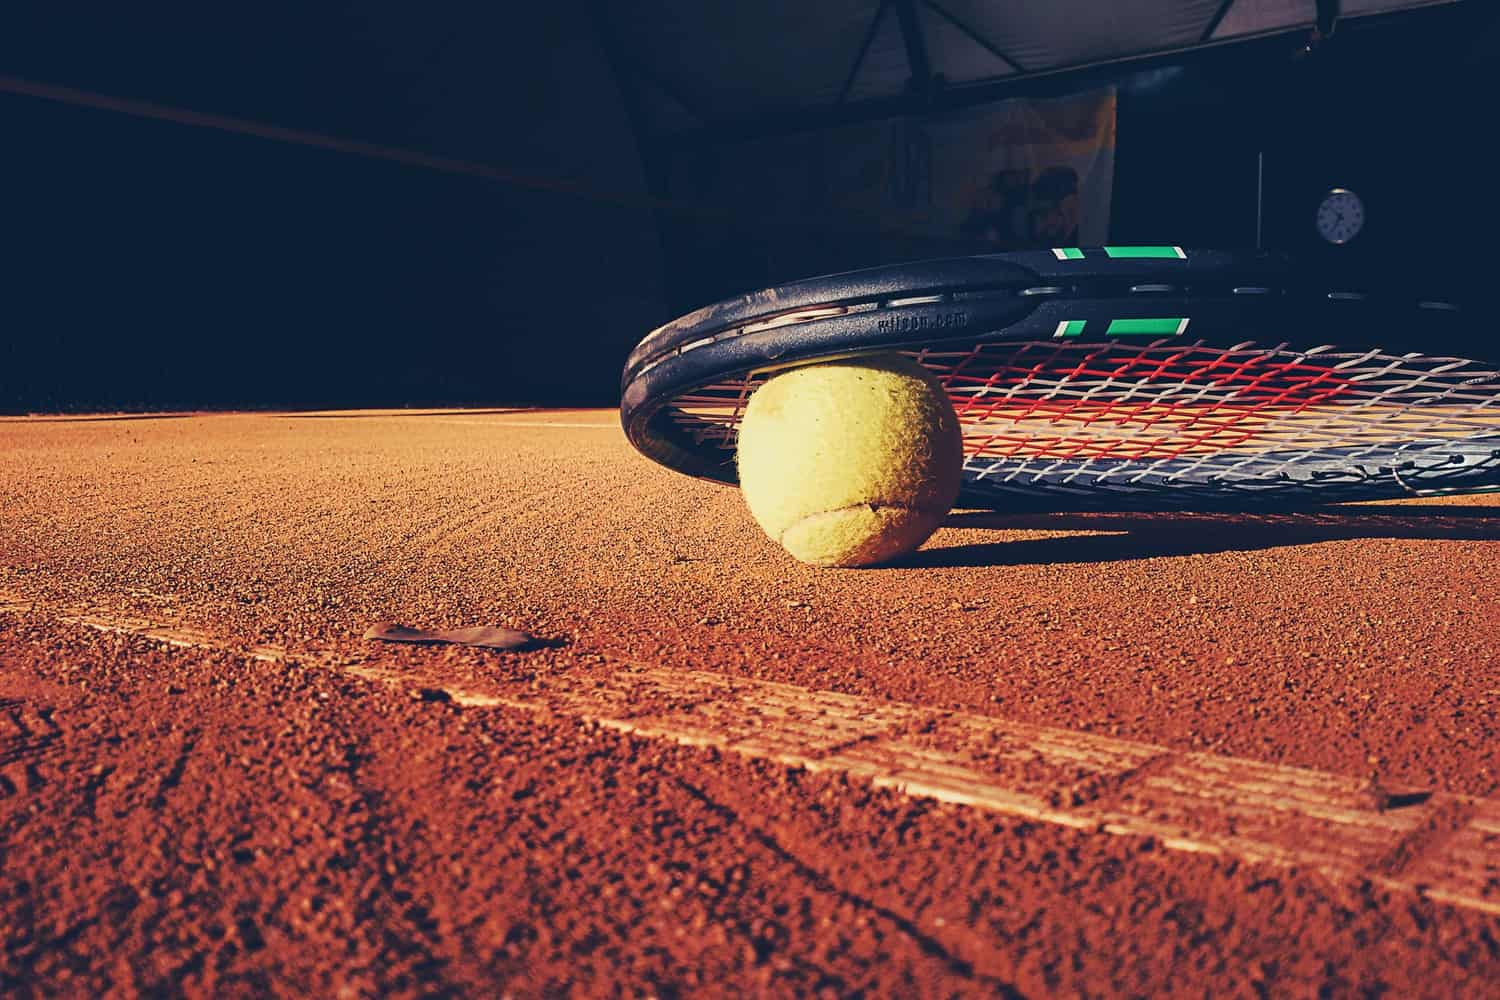 A tennis ball on a court.